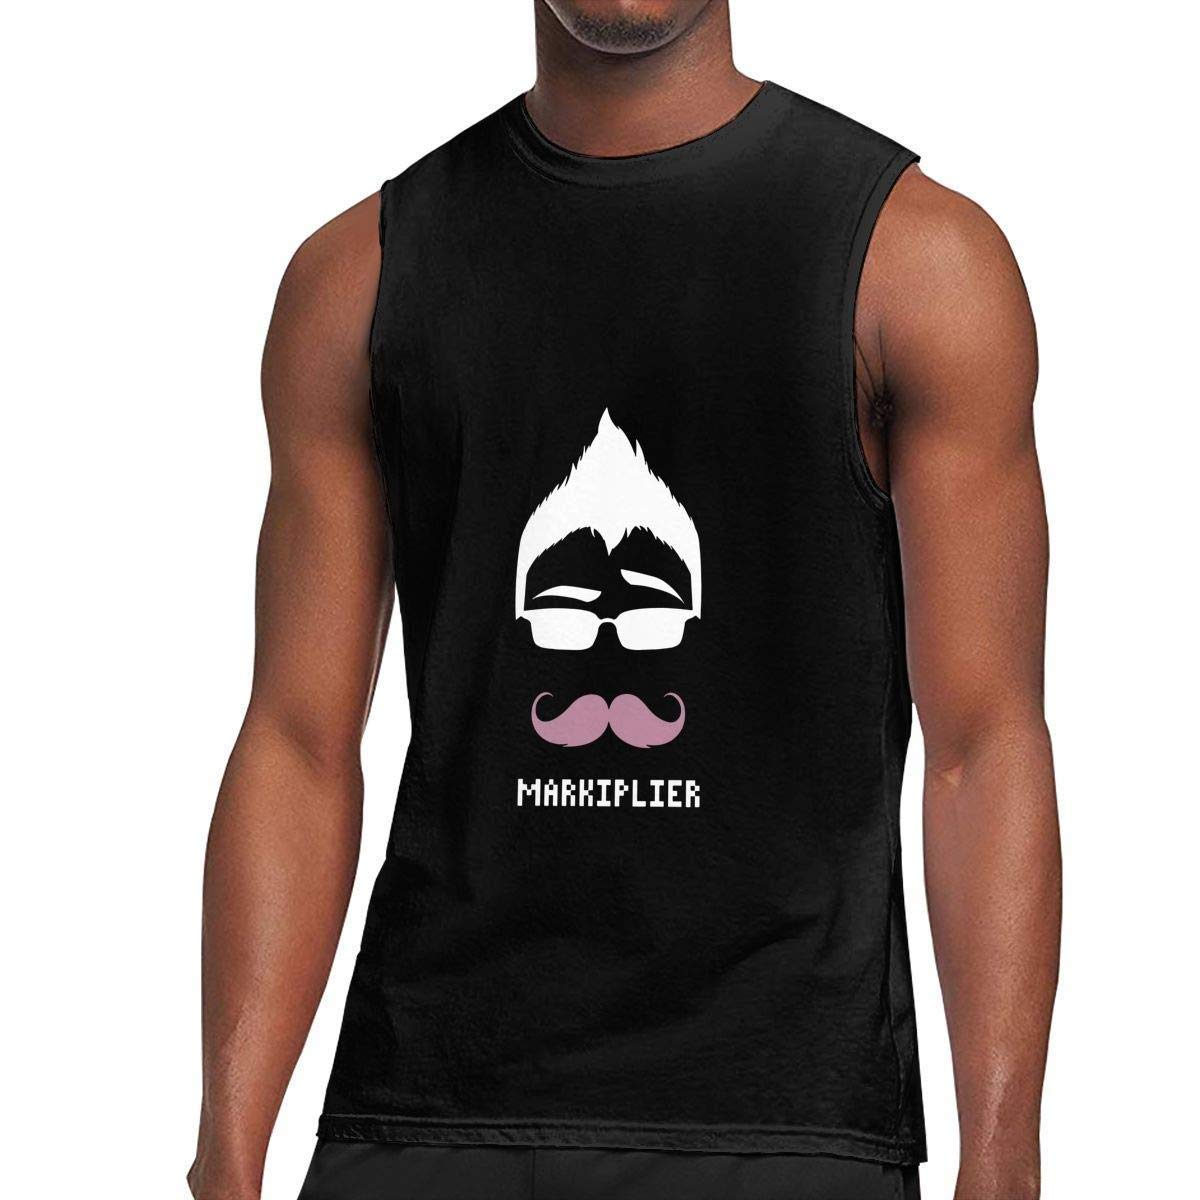 Zpanter S Sleeveless T Shirt Markiplier Workout Tank Tops Gym Bodybuilding Tshirts Black